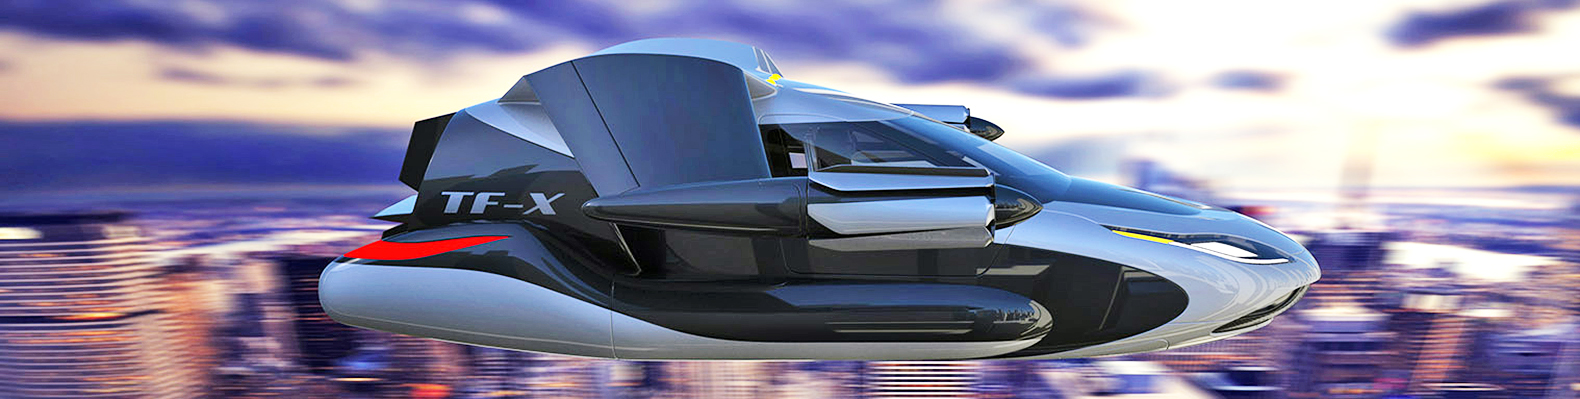 Terrafugia's flying car will be a reality by 2018